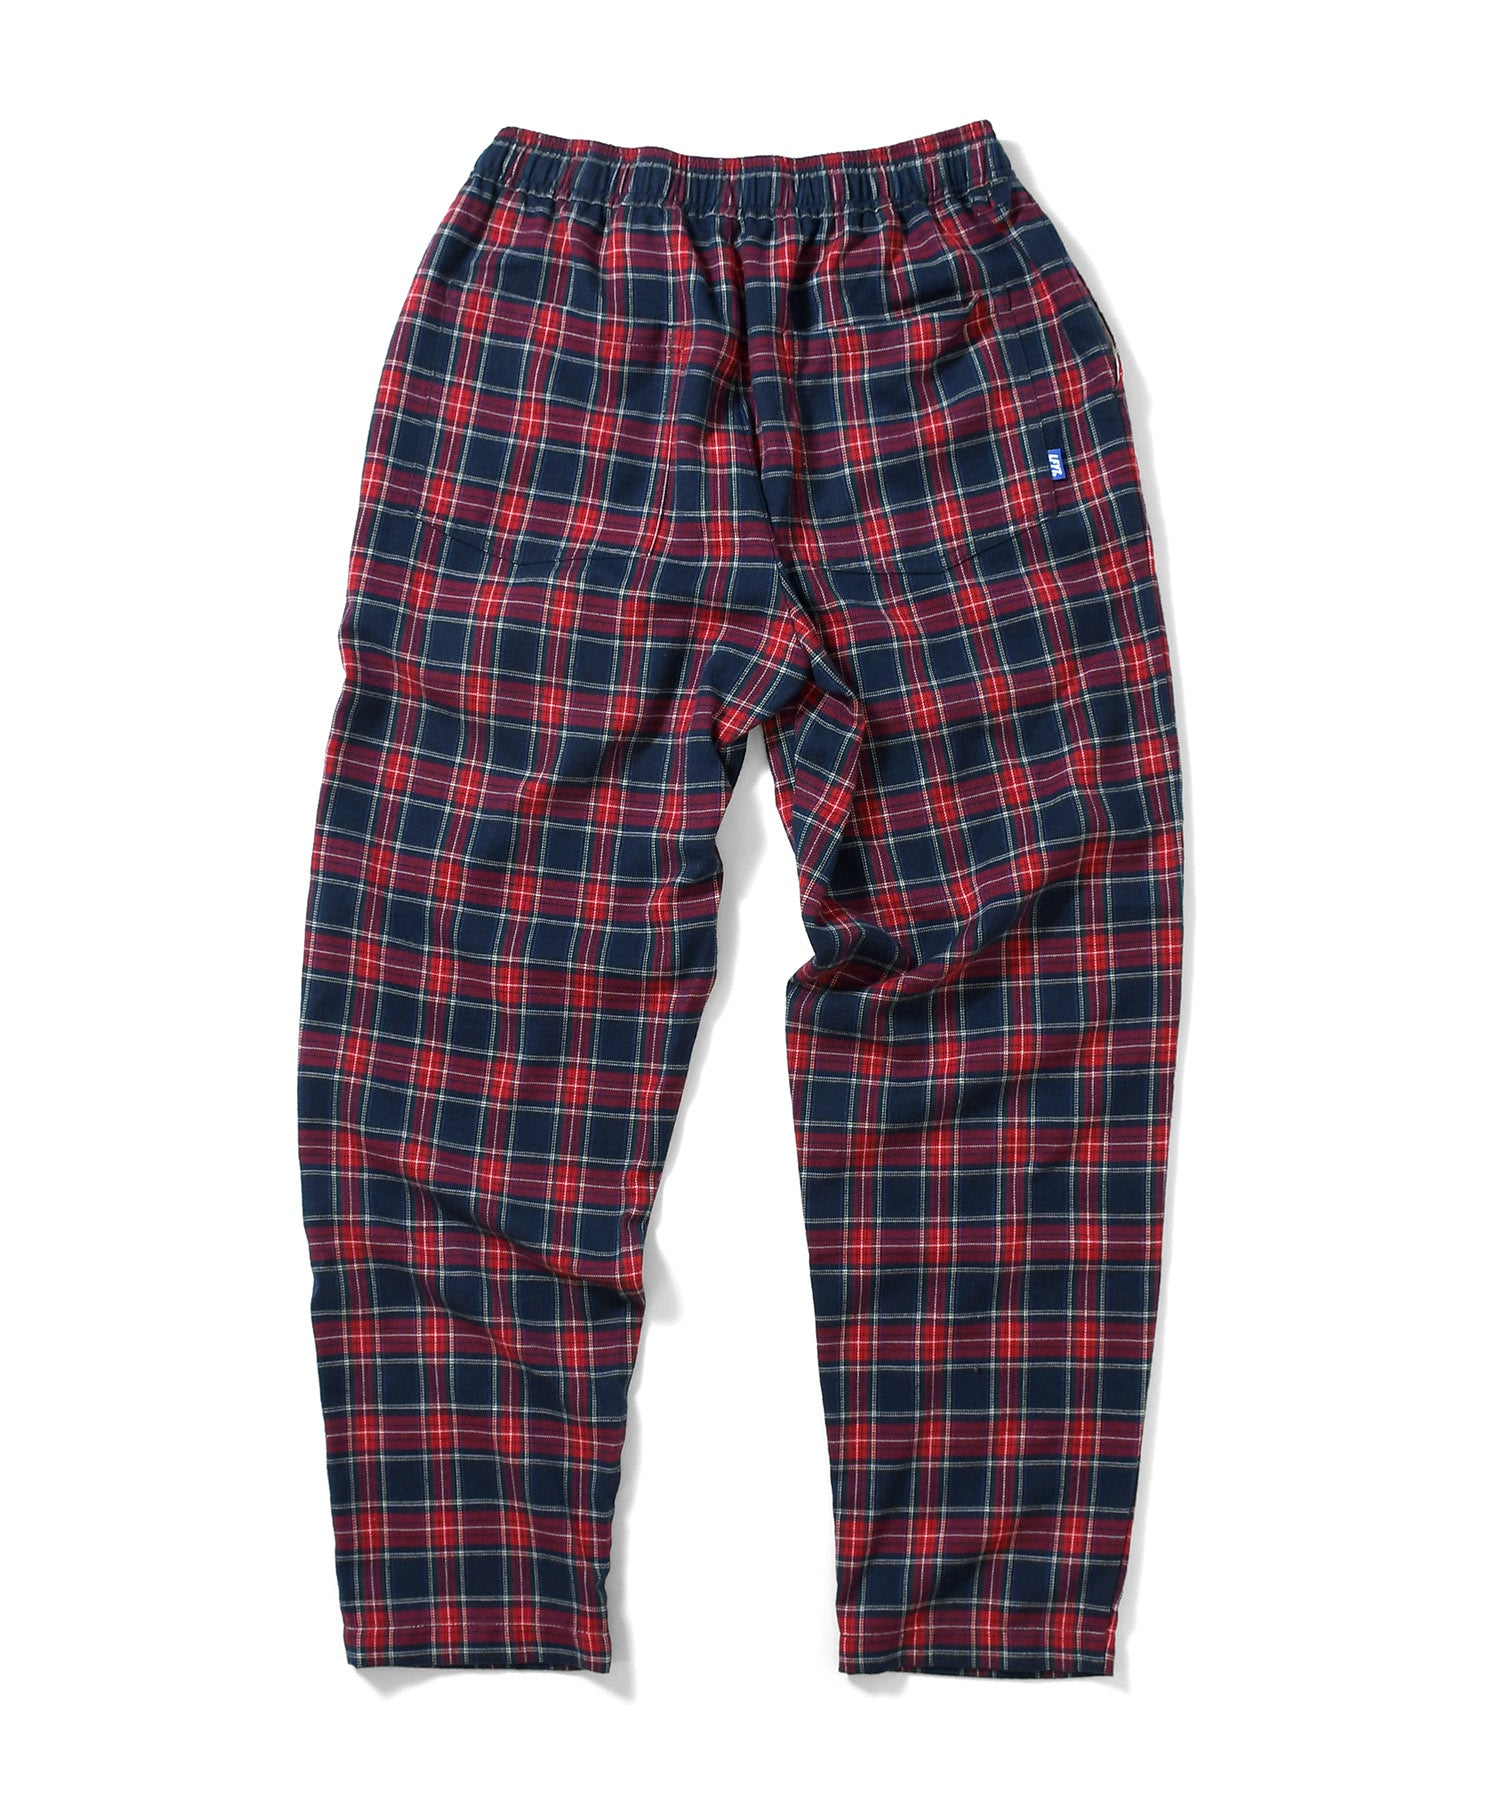 RELAXED FIT CHEF PANTS MULTI LA201204